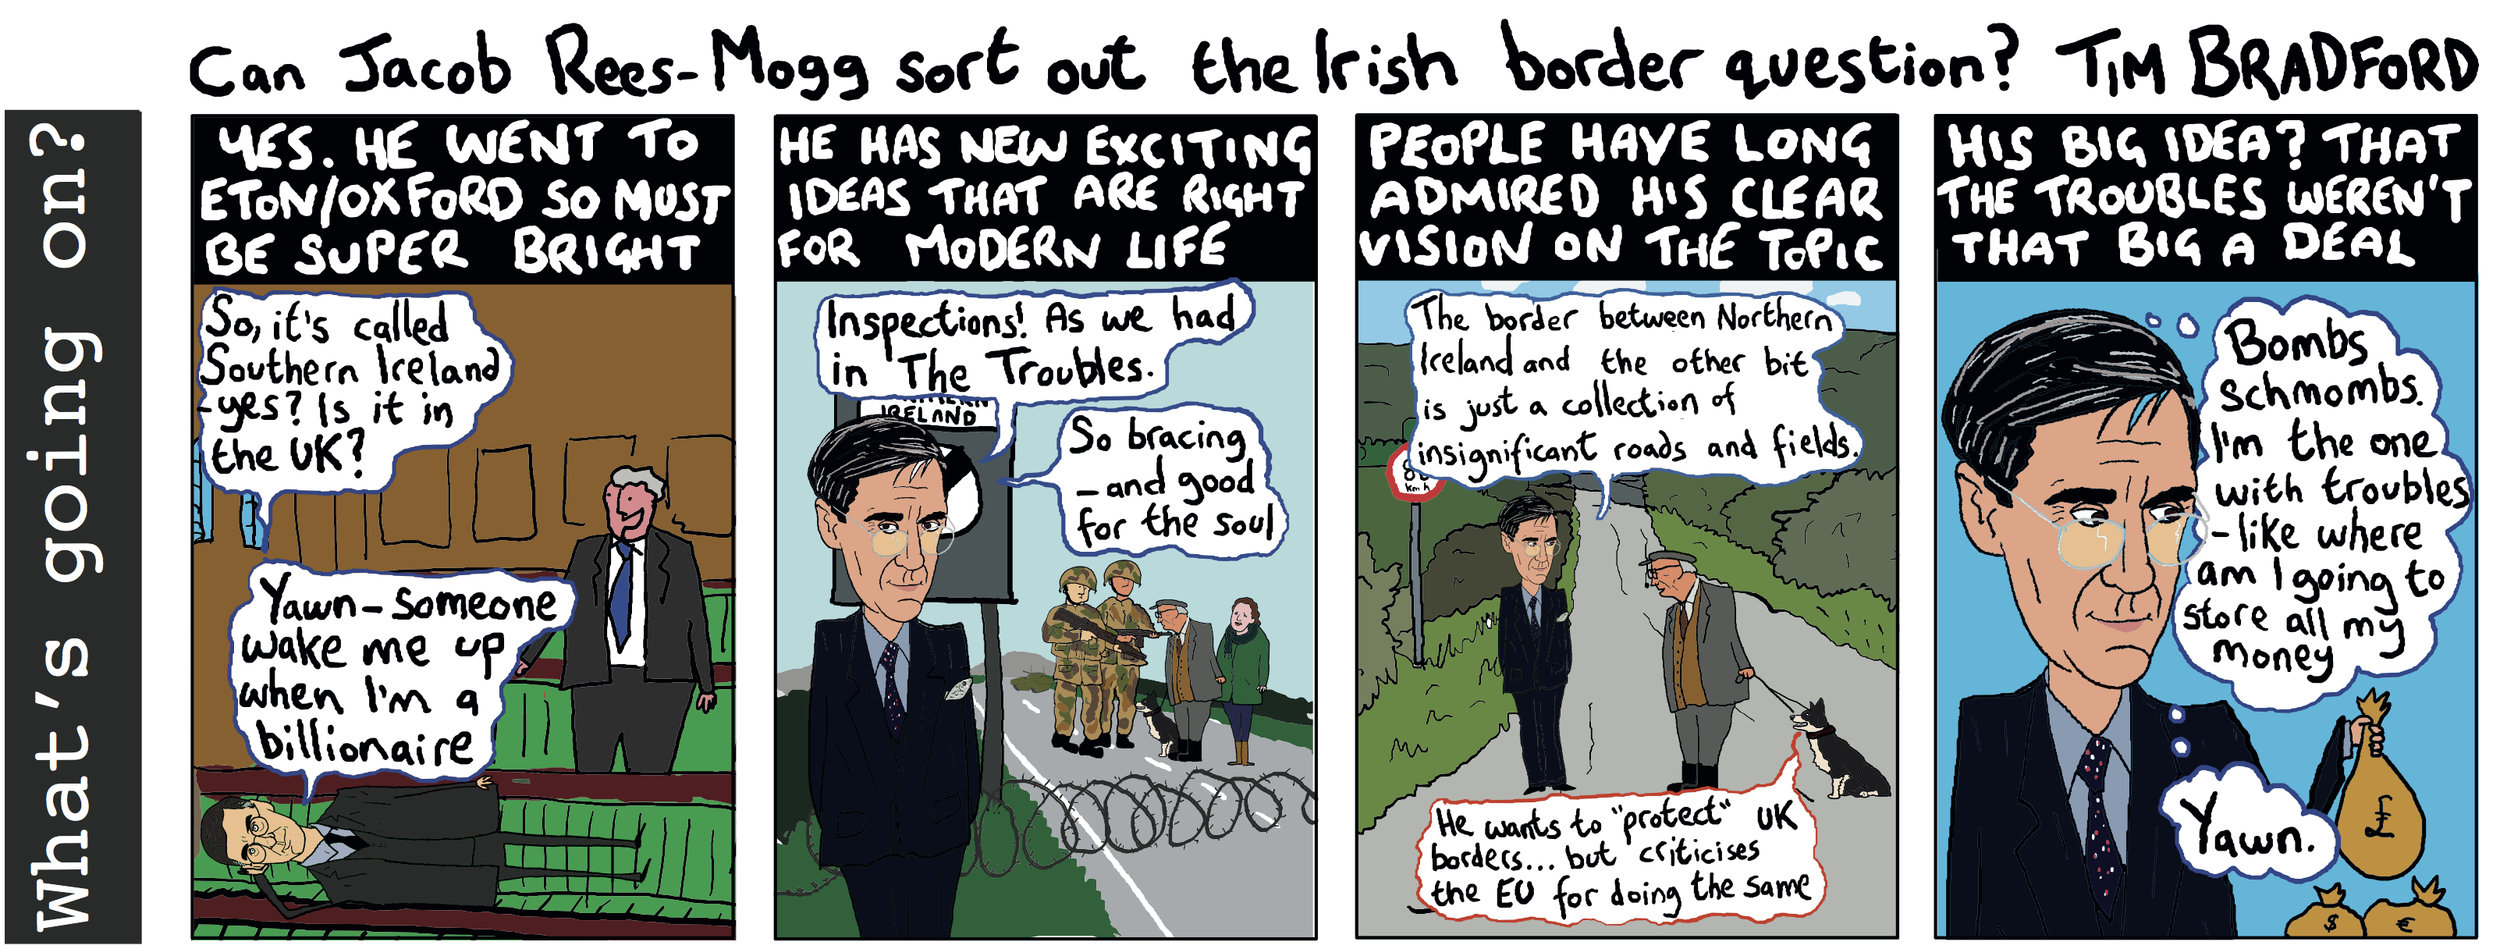 Can Jacob Rees-Mogg sort out the irish border question? - 04/09/18